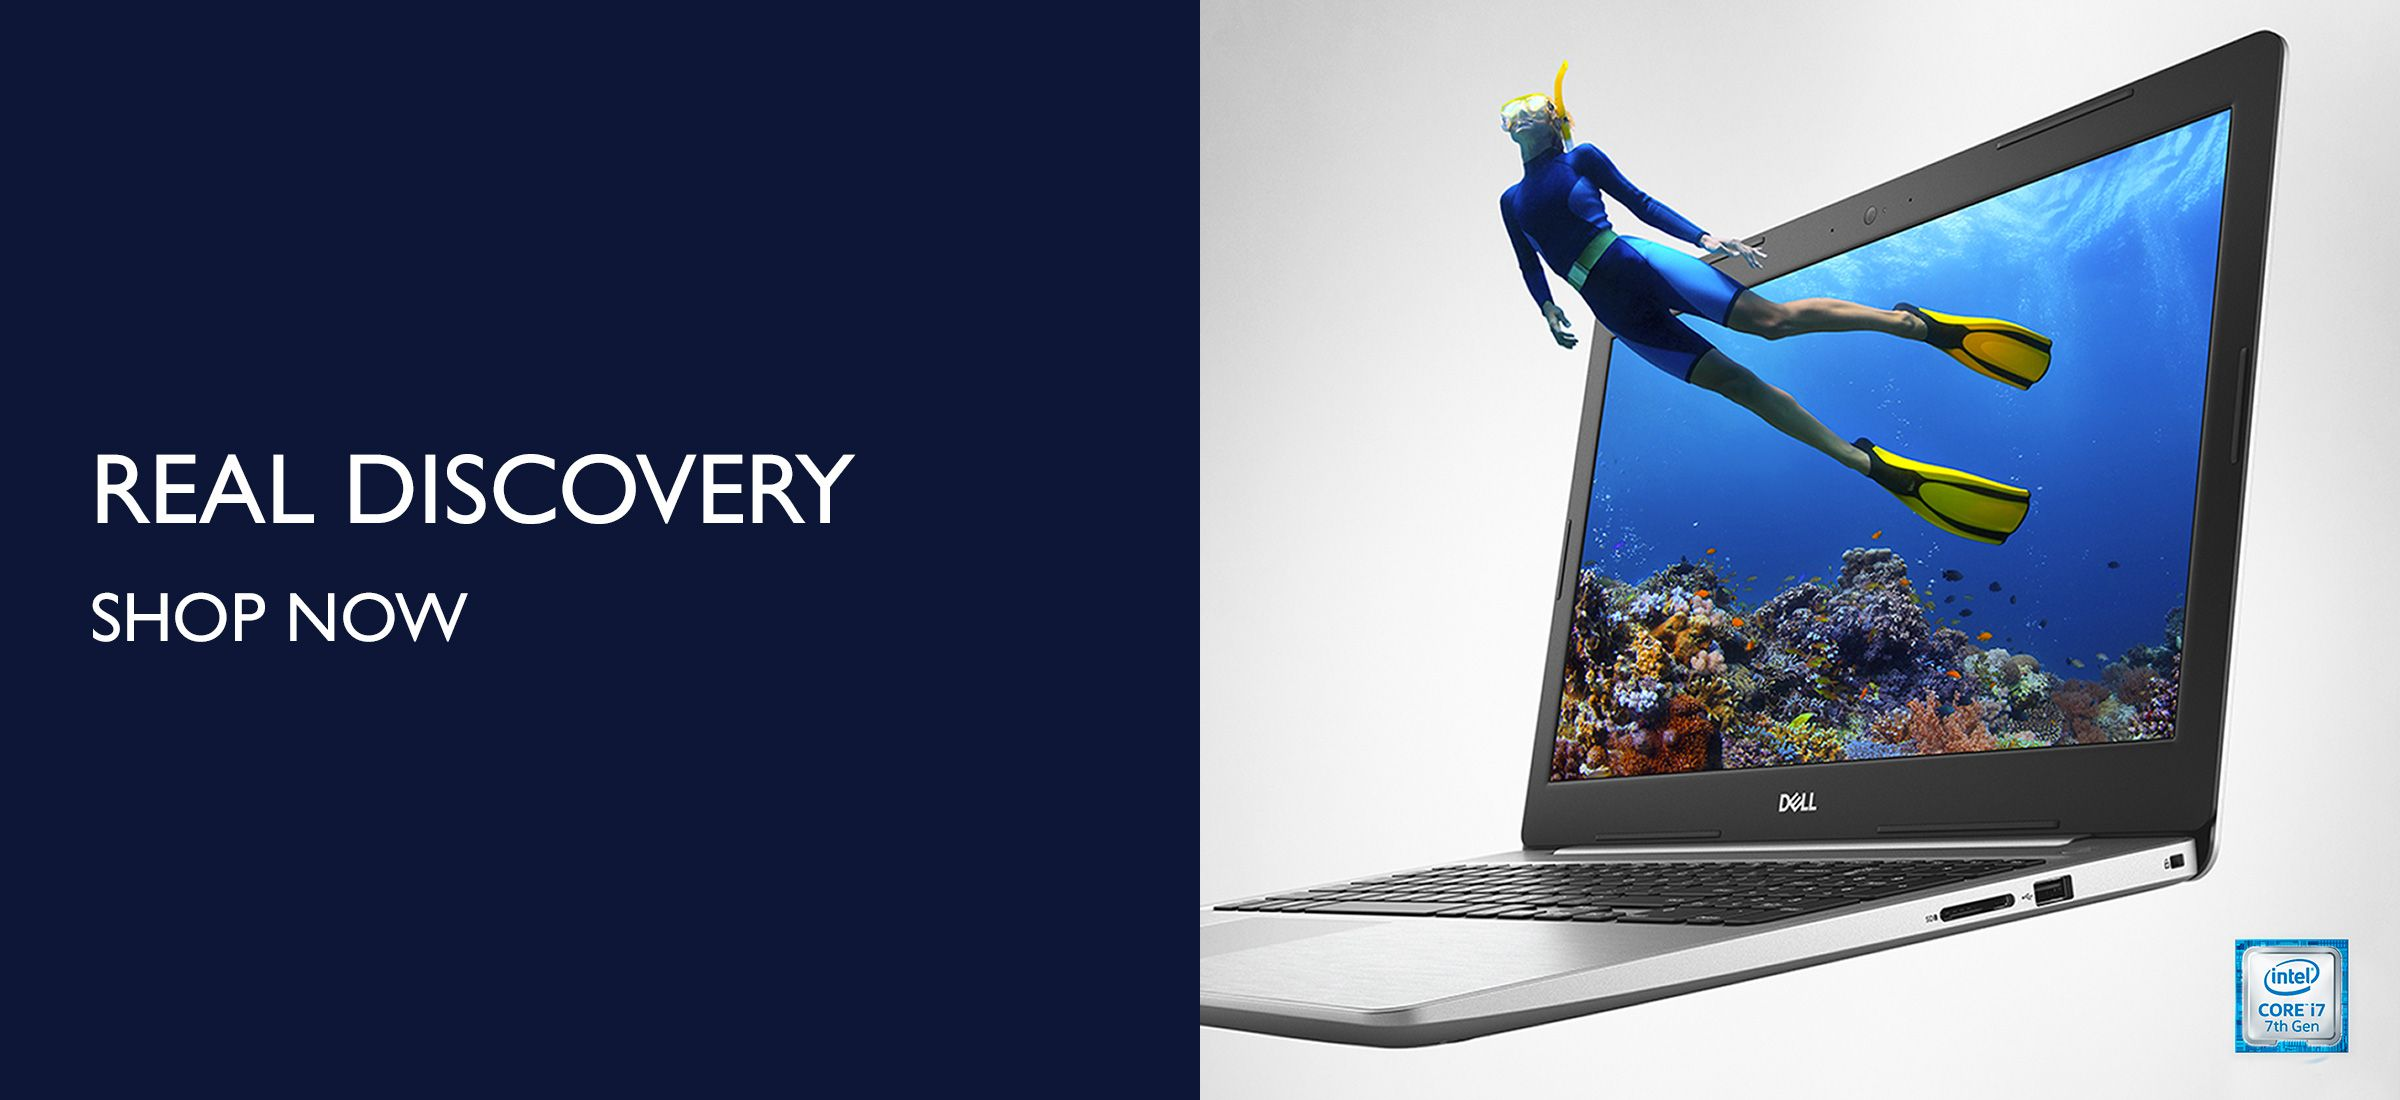 REAL DISCOVERY - DELL LOKI LAPTOP